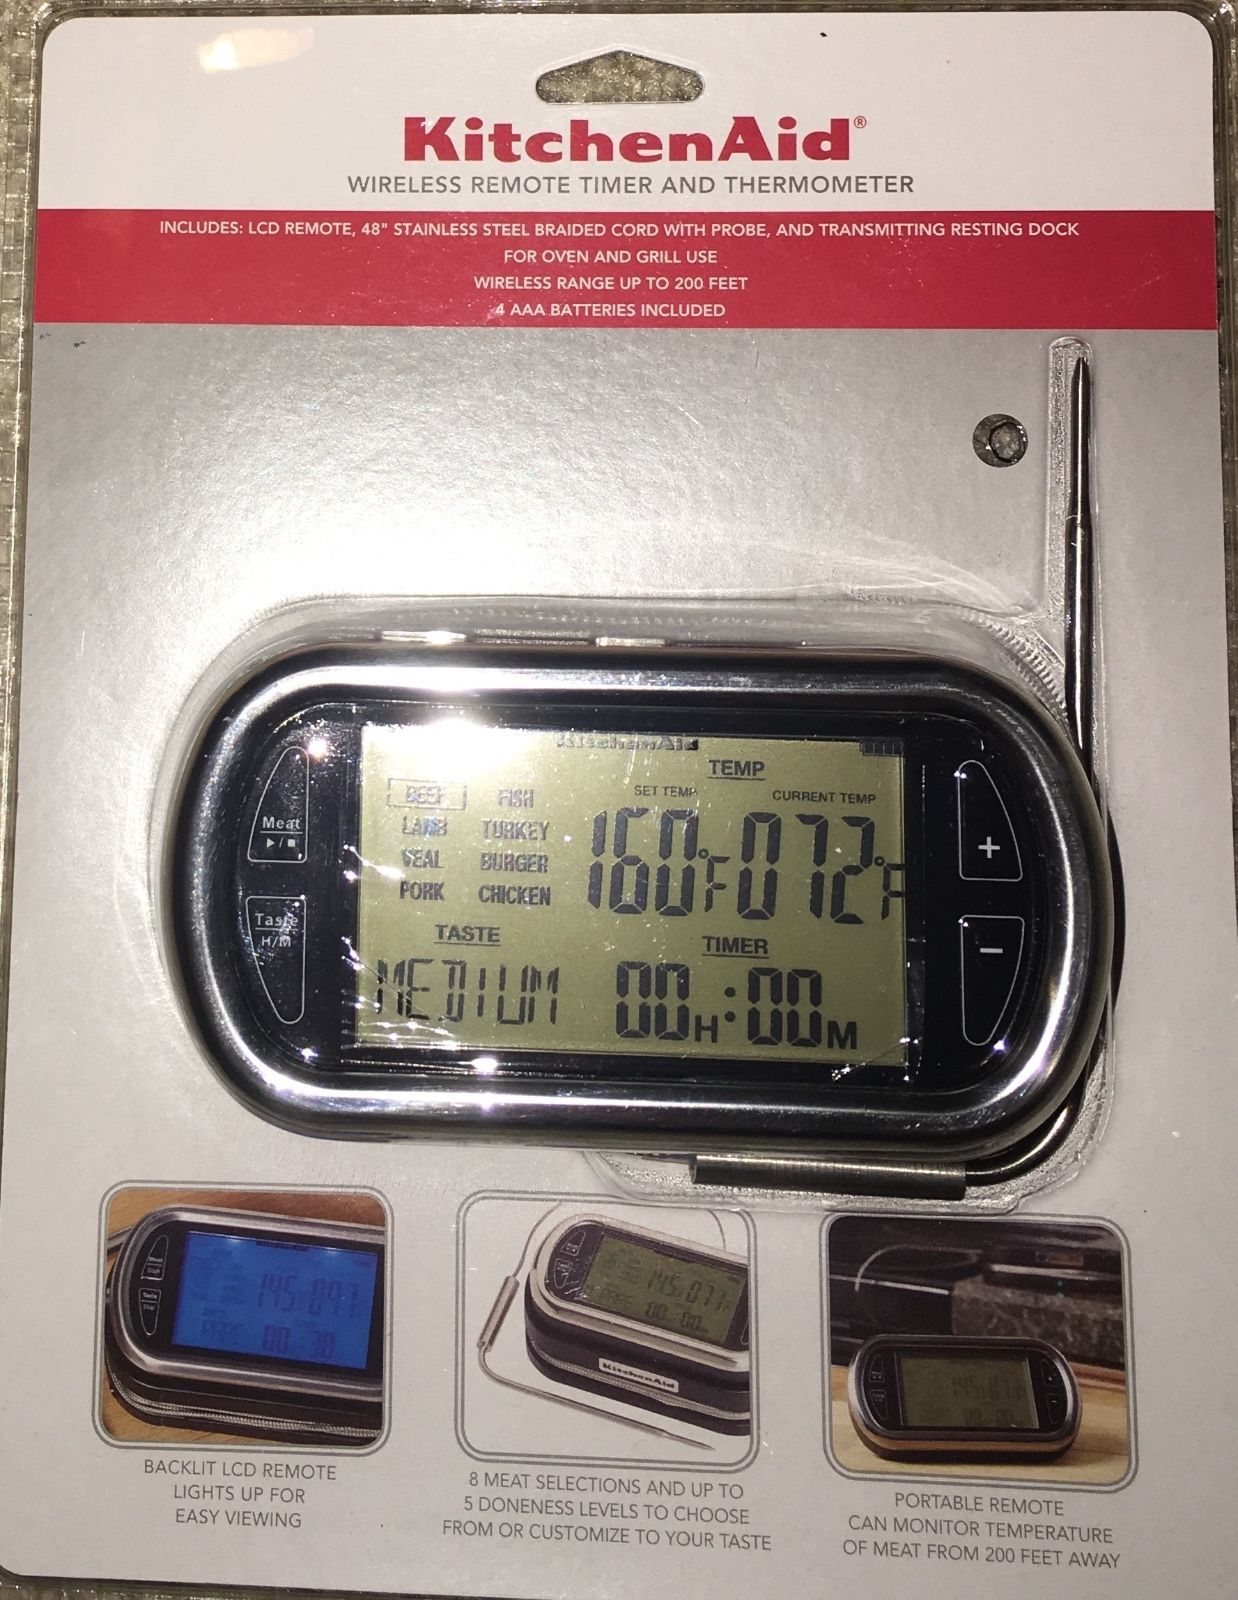 Kitchenaid Timer Wireless Remote With Meat Thermometer Kitchenaid Want It Need It Can 39 T